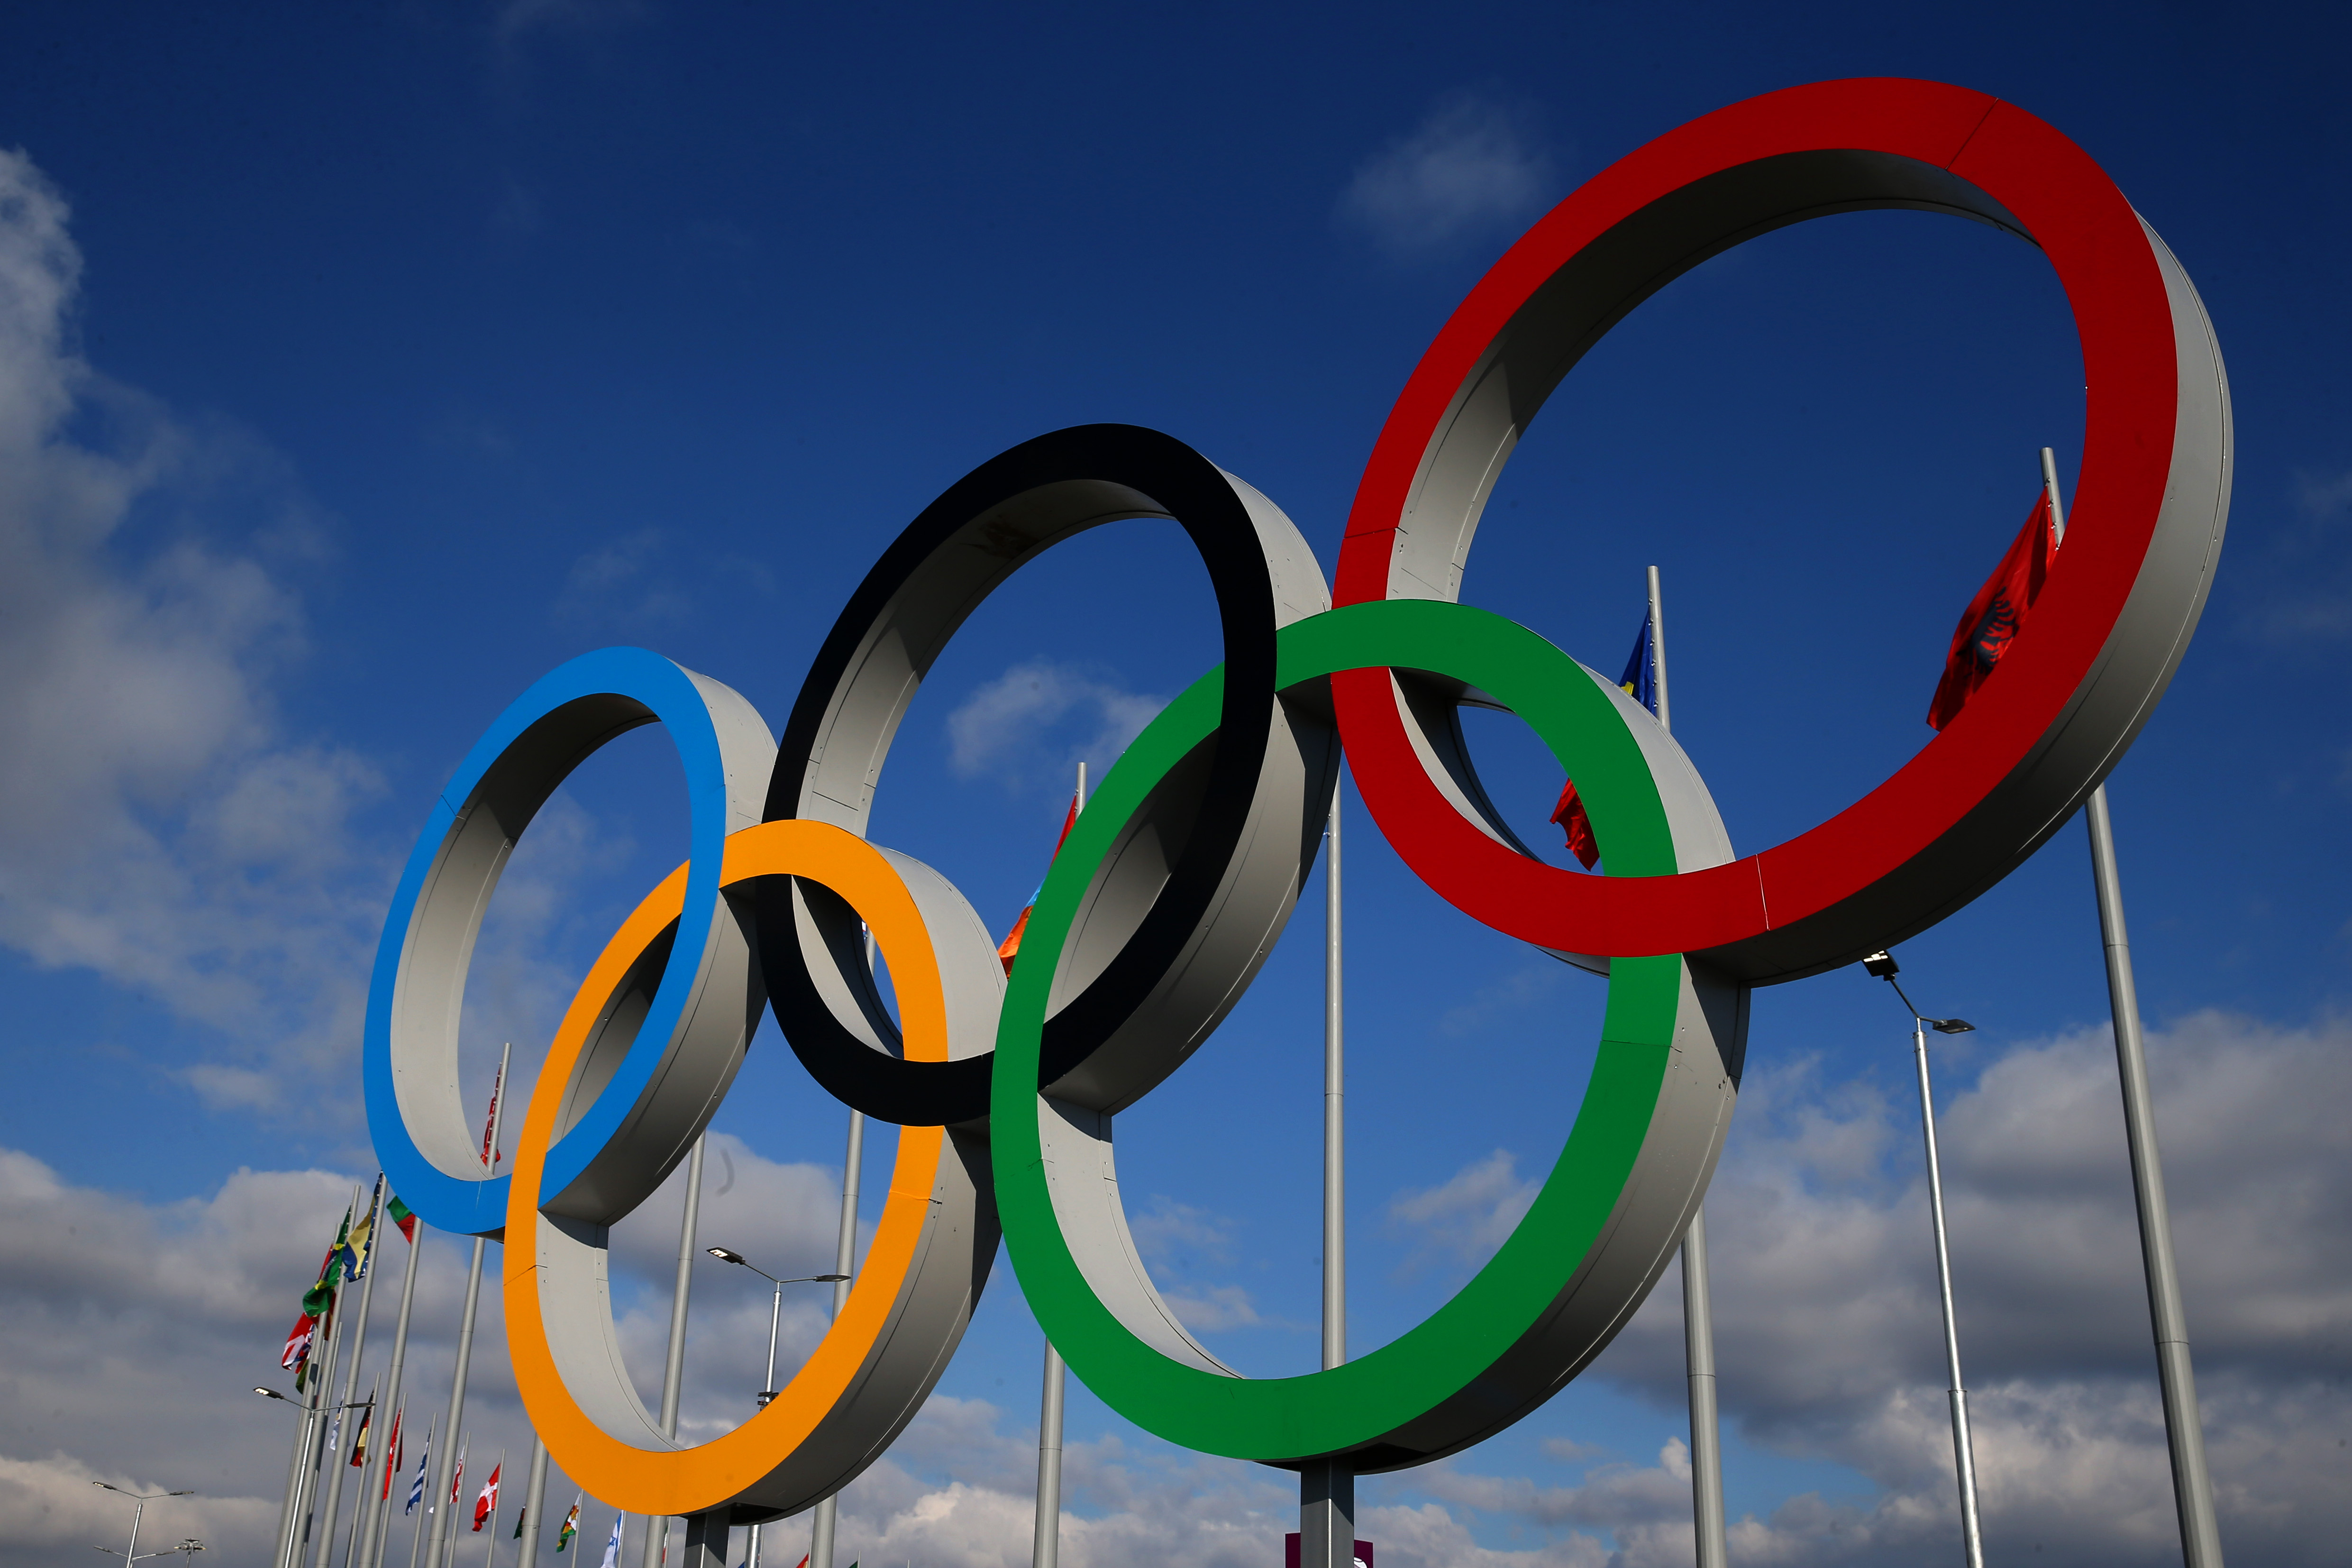 The Olympic rings are displayed ahead of the Sochi 2014 Winter Olympics at the Olympic Park in Sochi, Russia on Feb. 2, 2014.